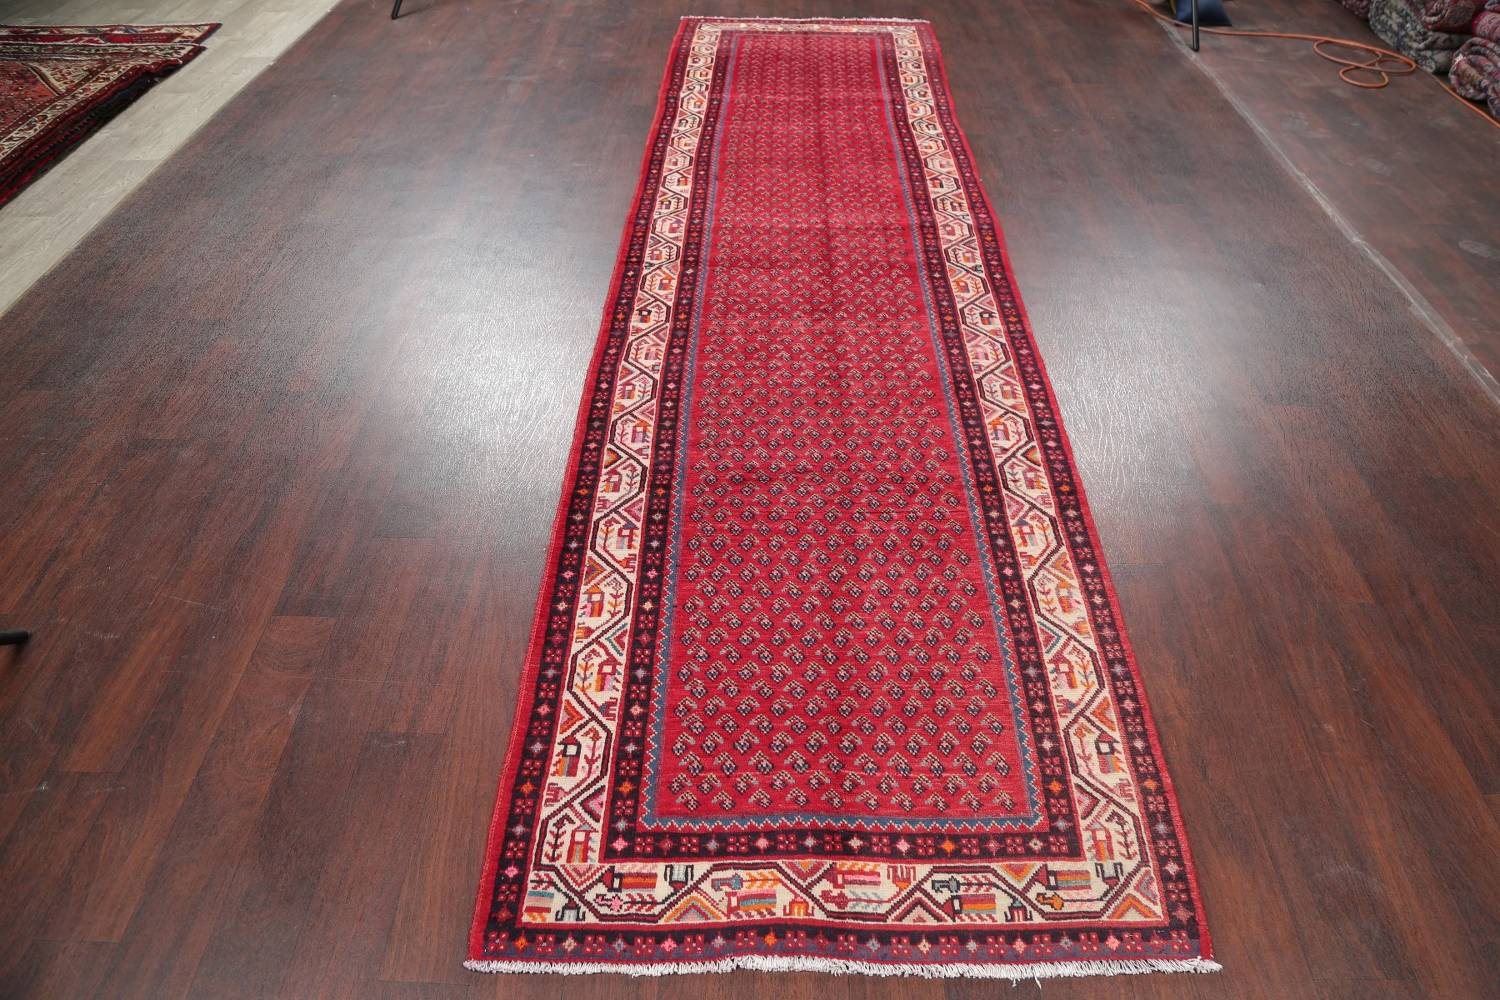 One-of-a-Kind Boteh Botemir Persian Runner Rug 3x13 image 13